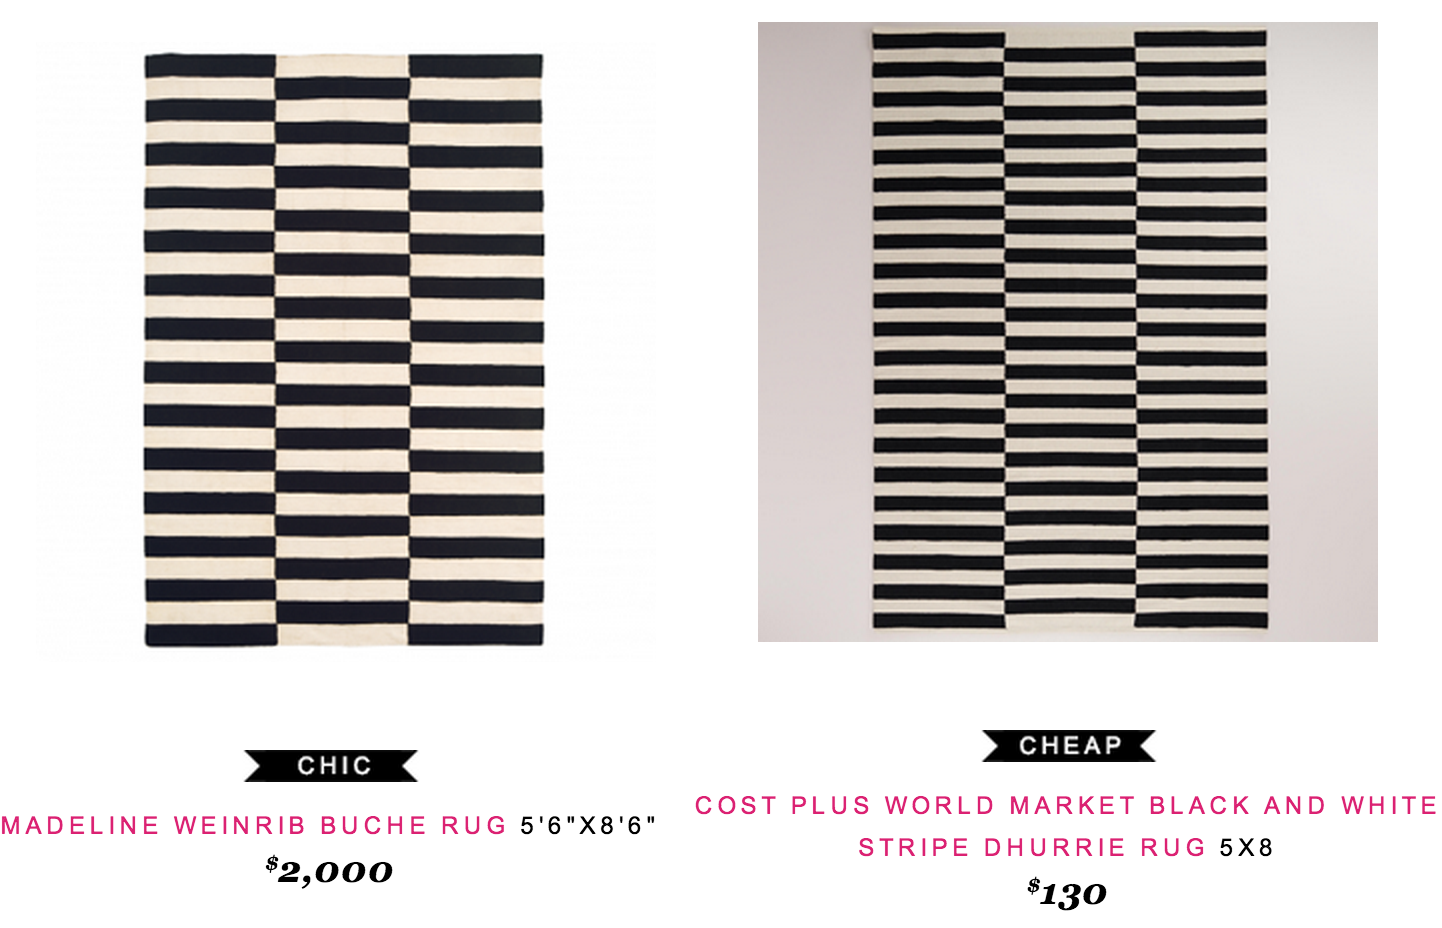 Madeline Weinrib Buche Rug 5 6 X8 2000 Vs Cost Plus World Market Black And White Stripe Dhurrie 5x8 130